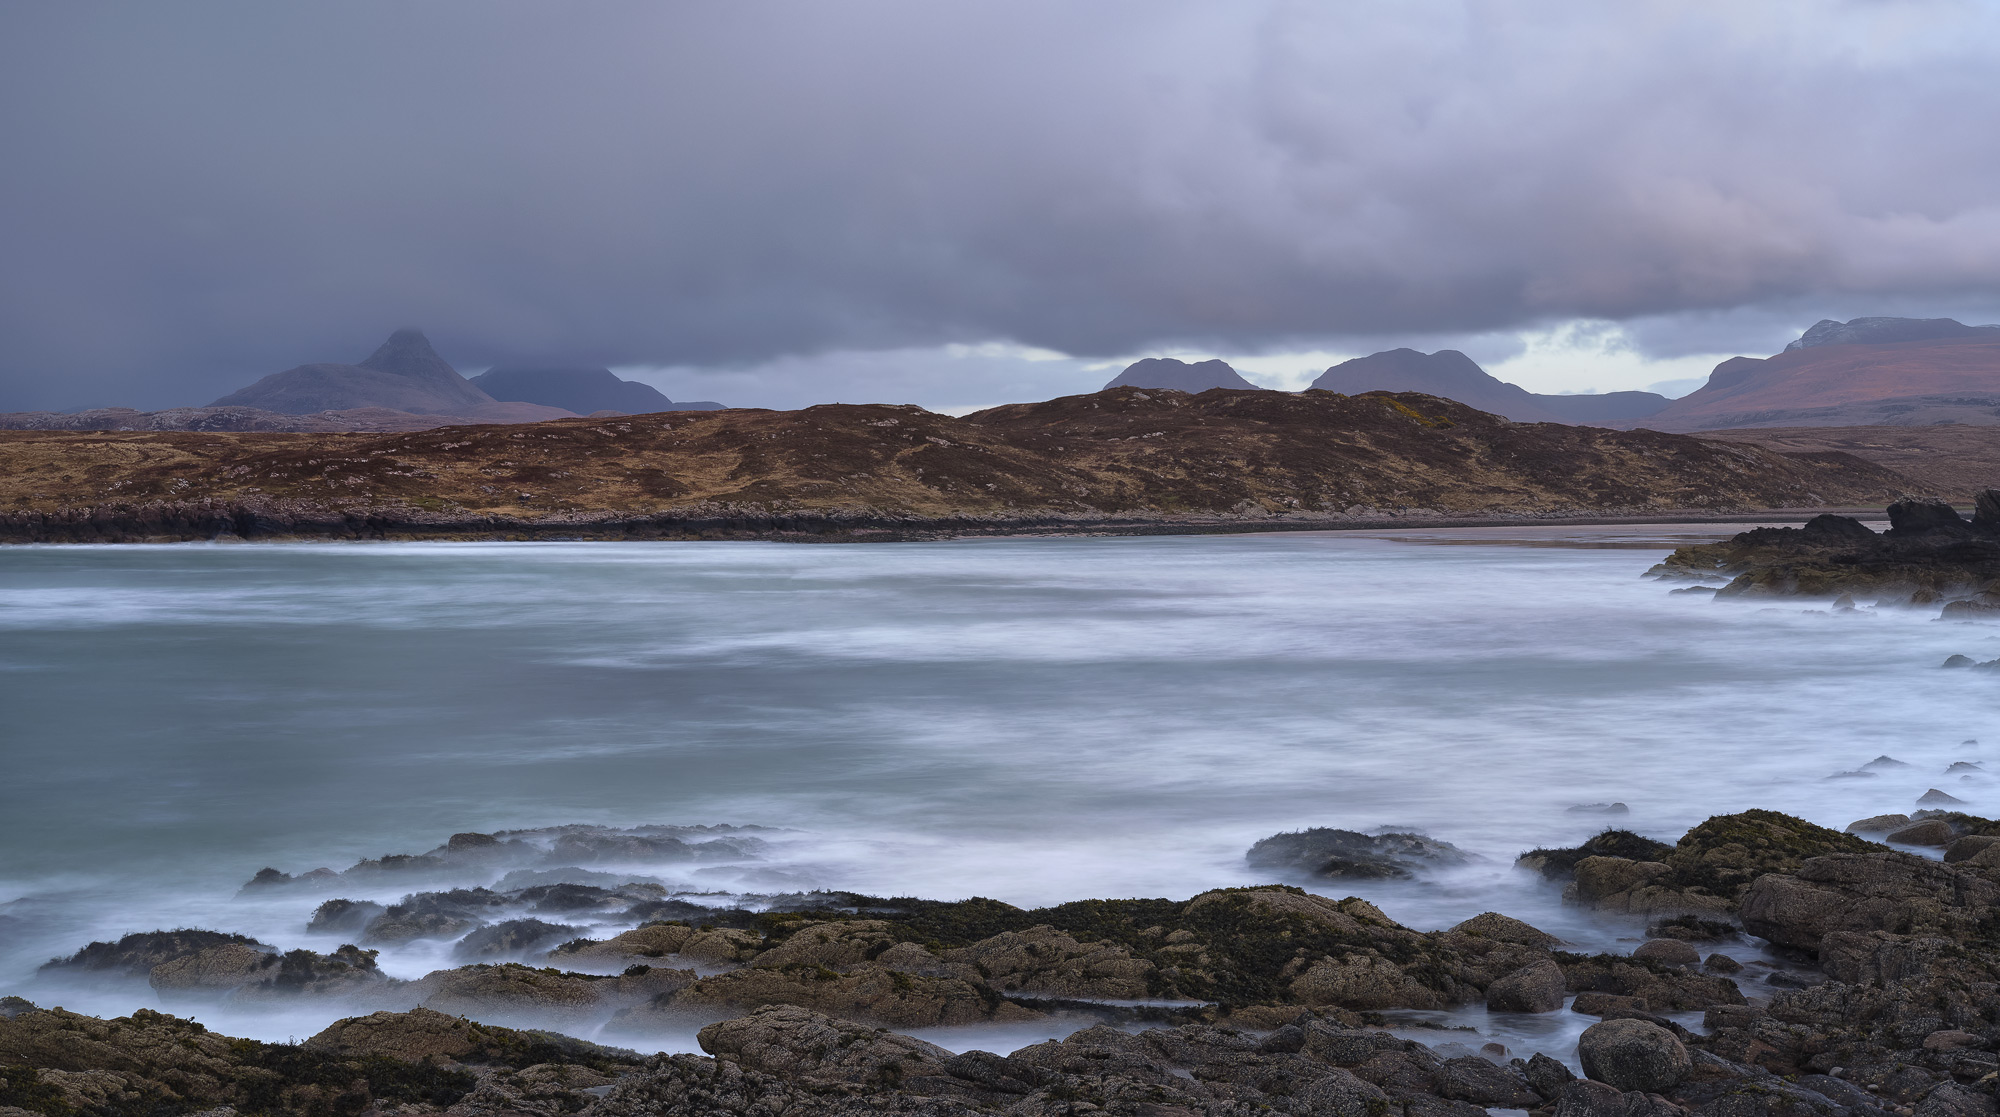 Stormy skies and rolling waves crash into the rocky coast bordering beautiful sandy Achnahaird Bay just before sunset in the Inverpolly reserve.